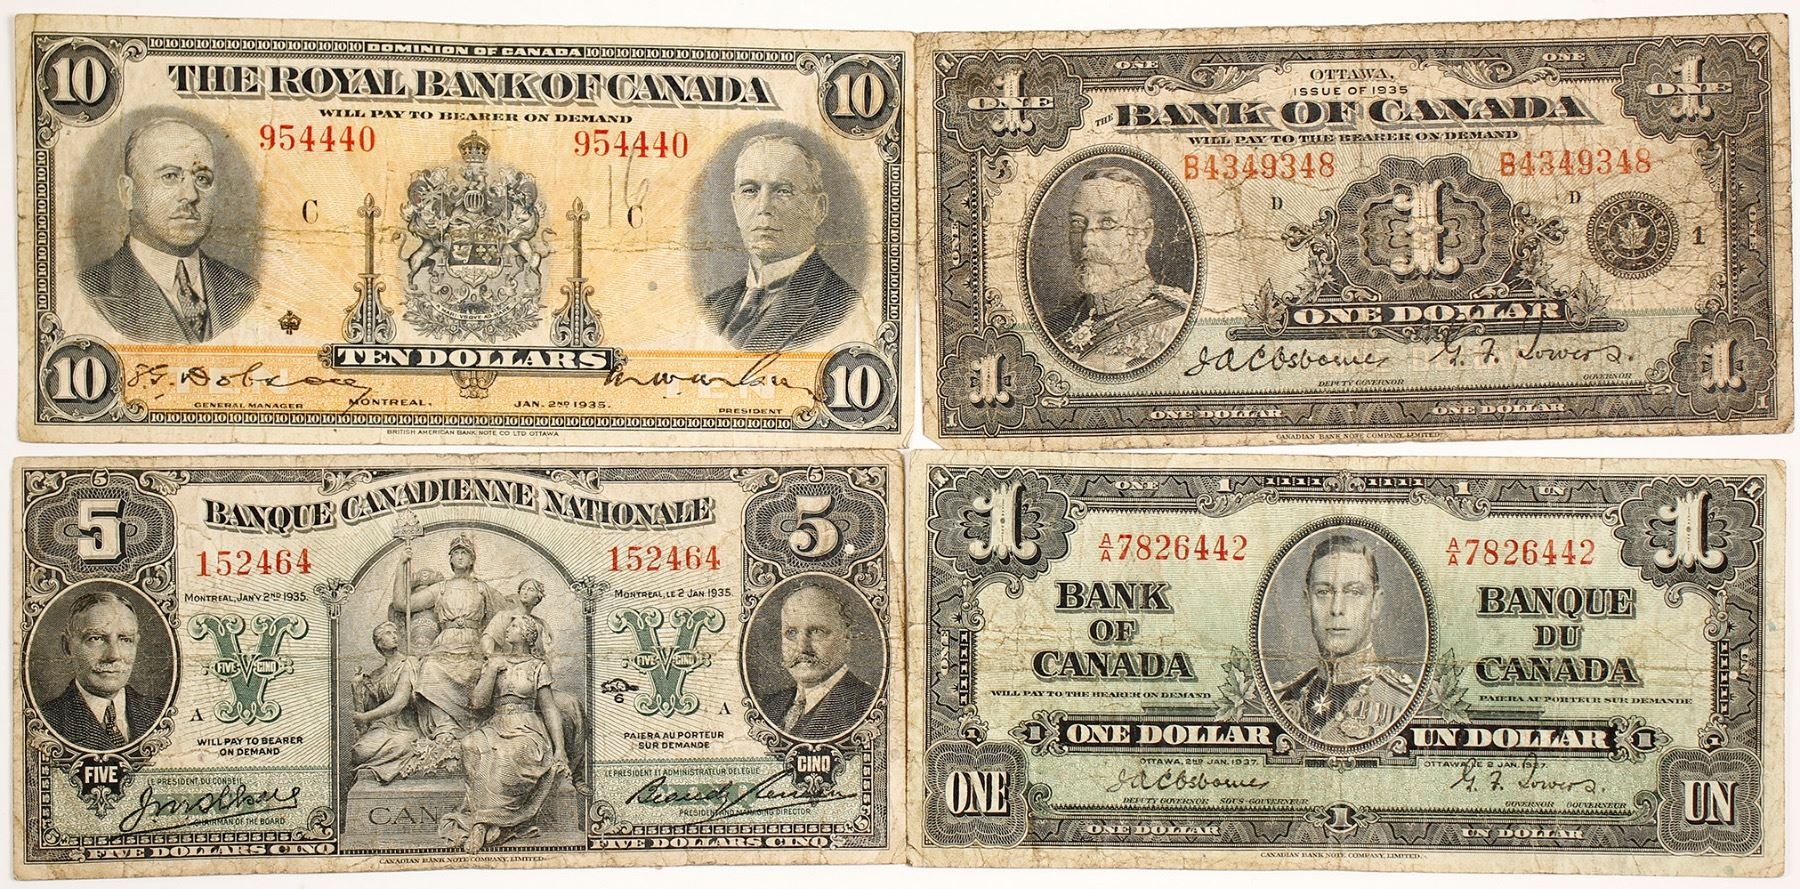 $10 BANK NOTES SELLING 1 NOTE FOR $17. BANK OF CANADA 1937-5